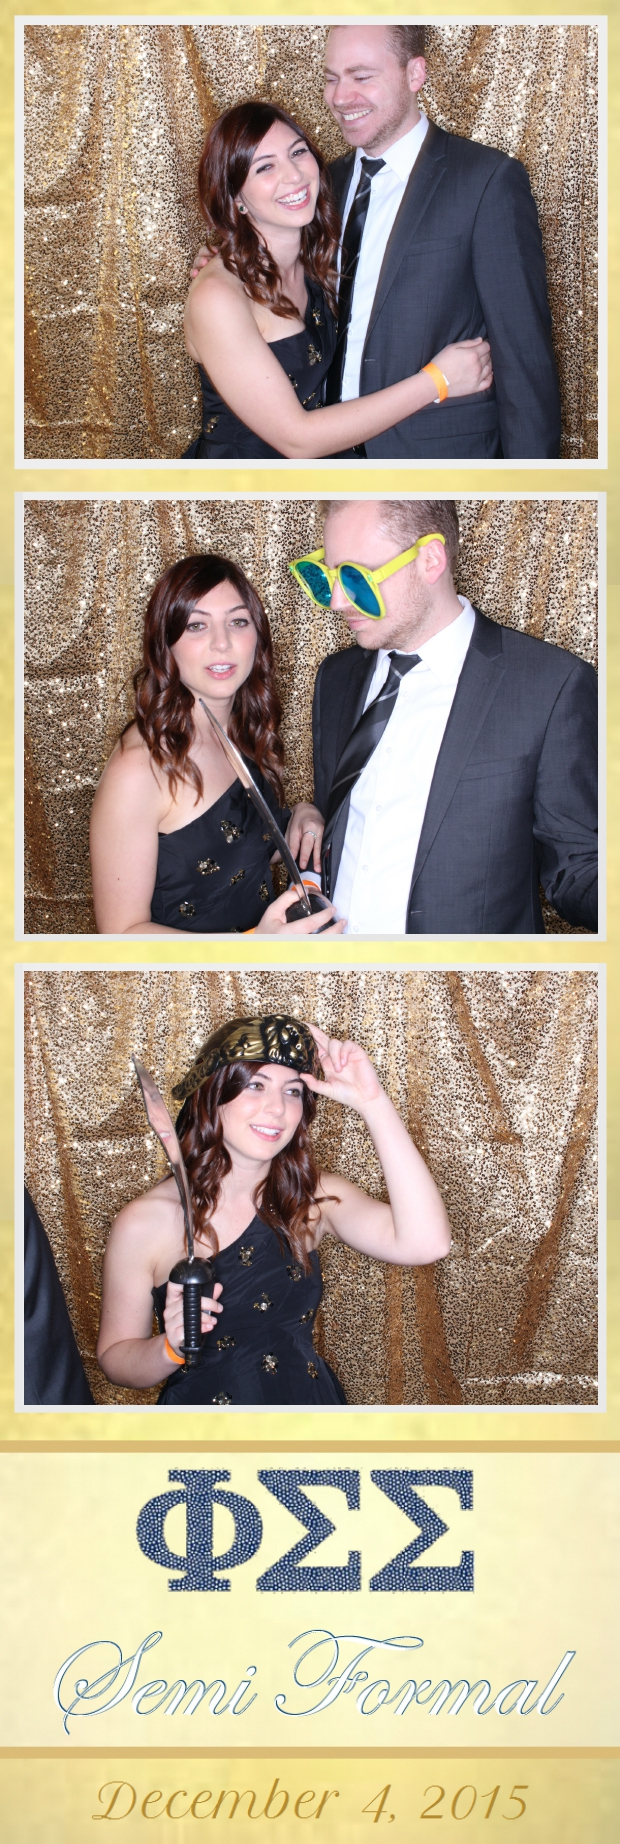 Guest House Events Photo Booth Phi Sigma Sigma Semi Formal (2).jpg